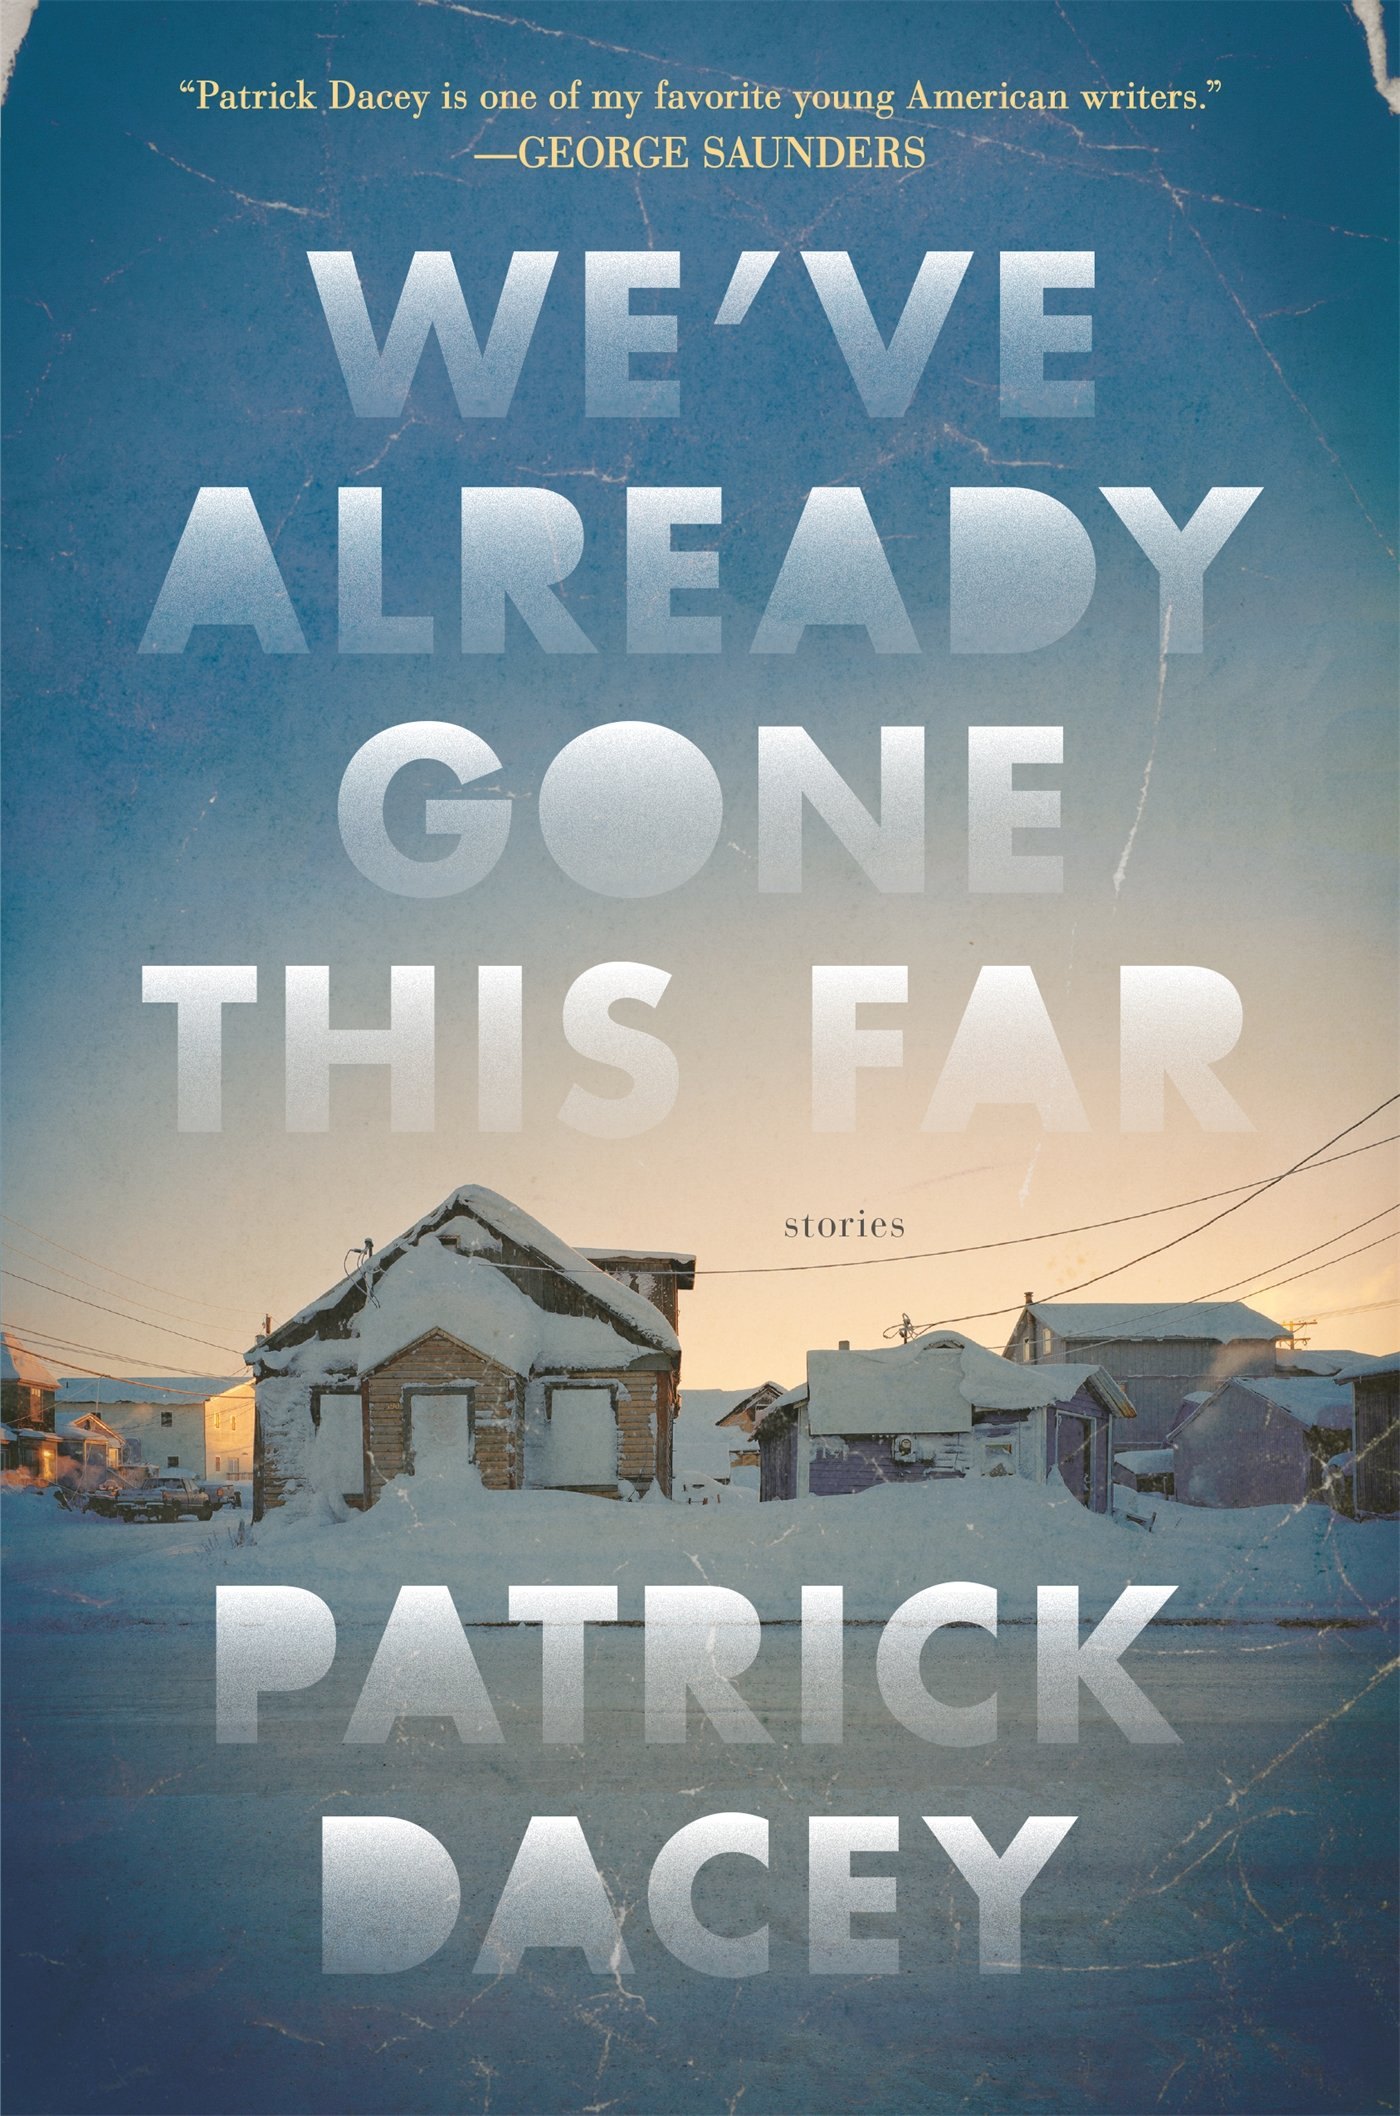 Book review: We've Already Gone This Far